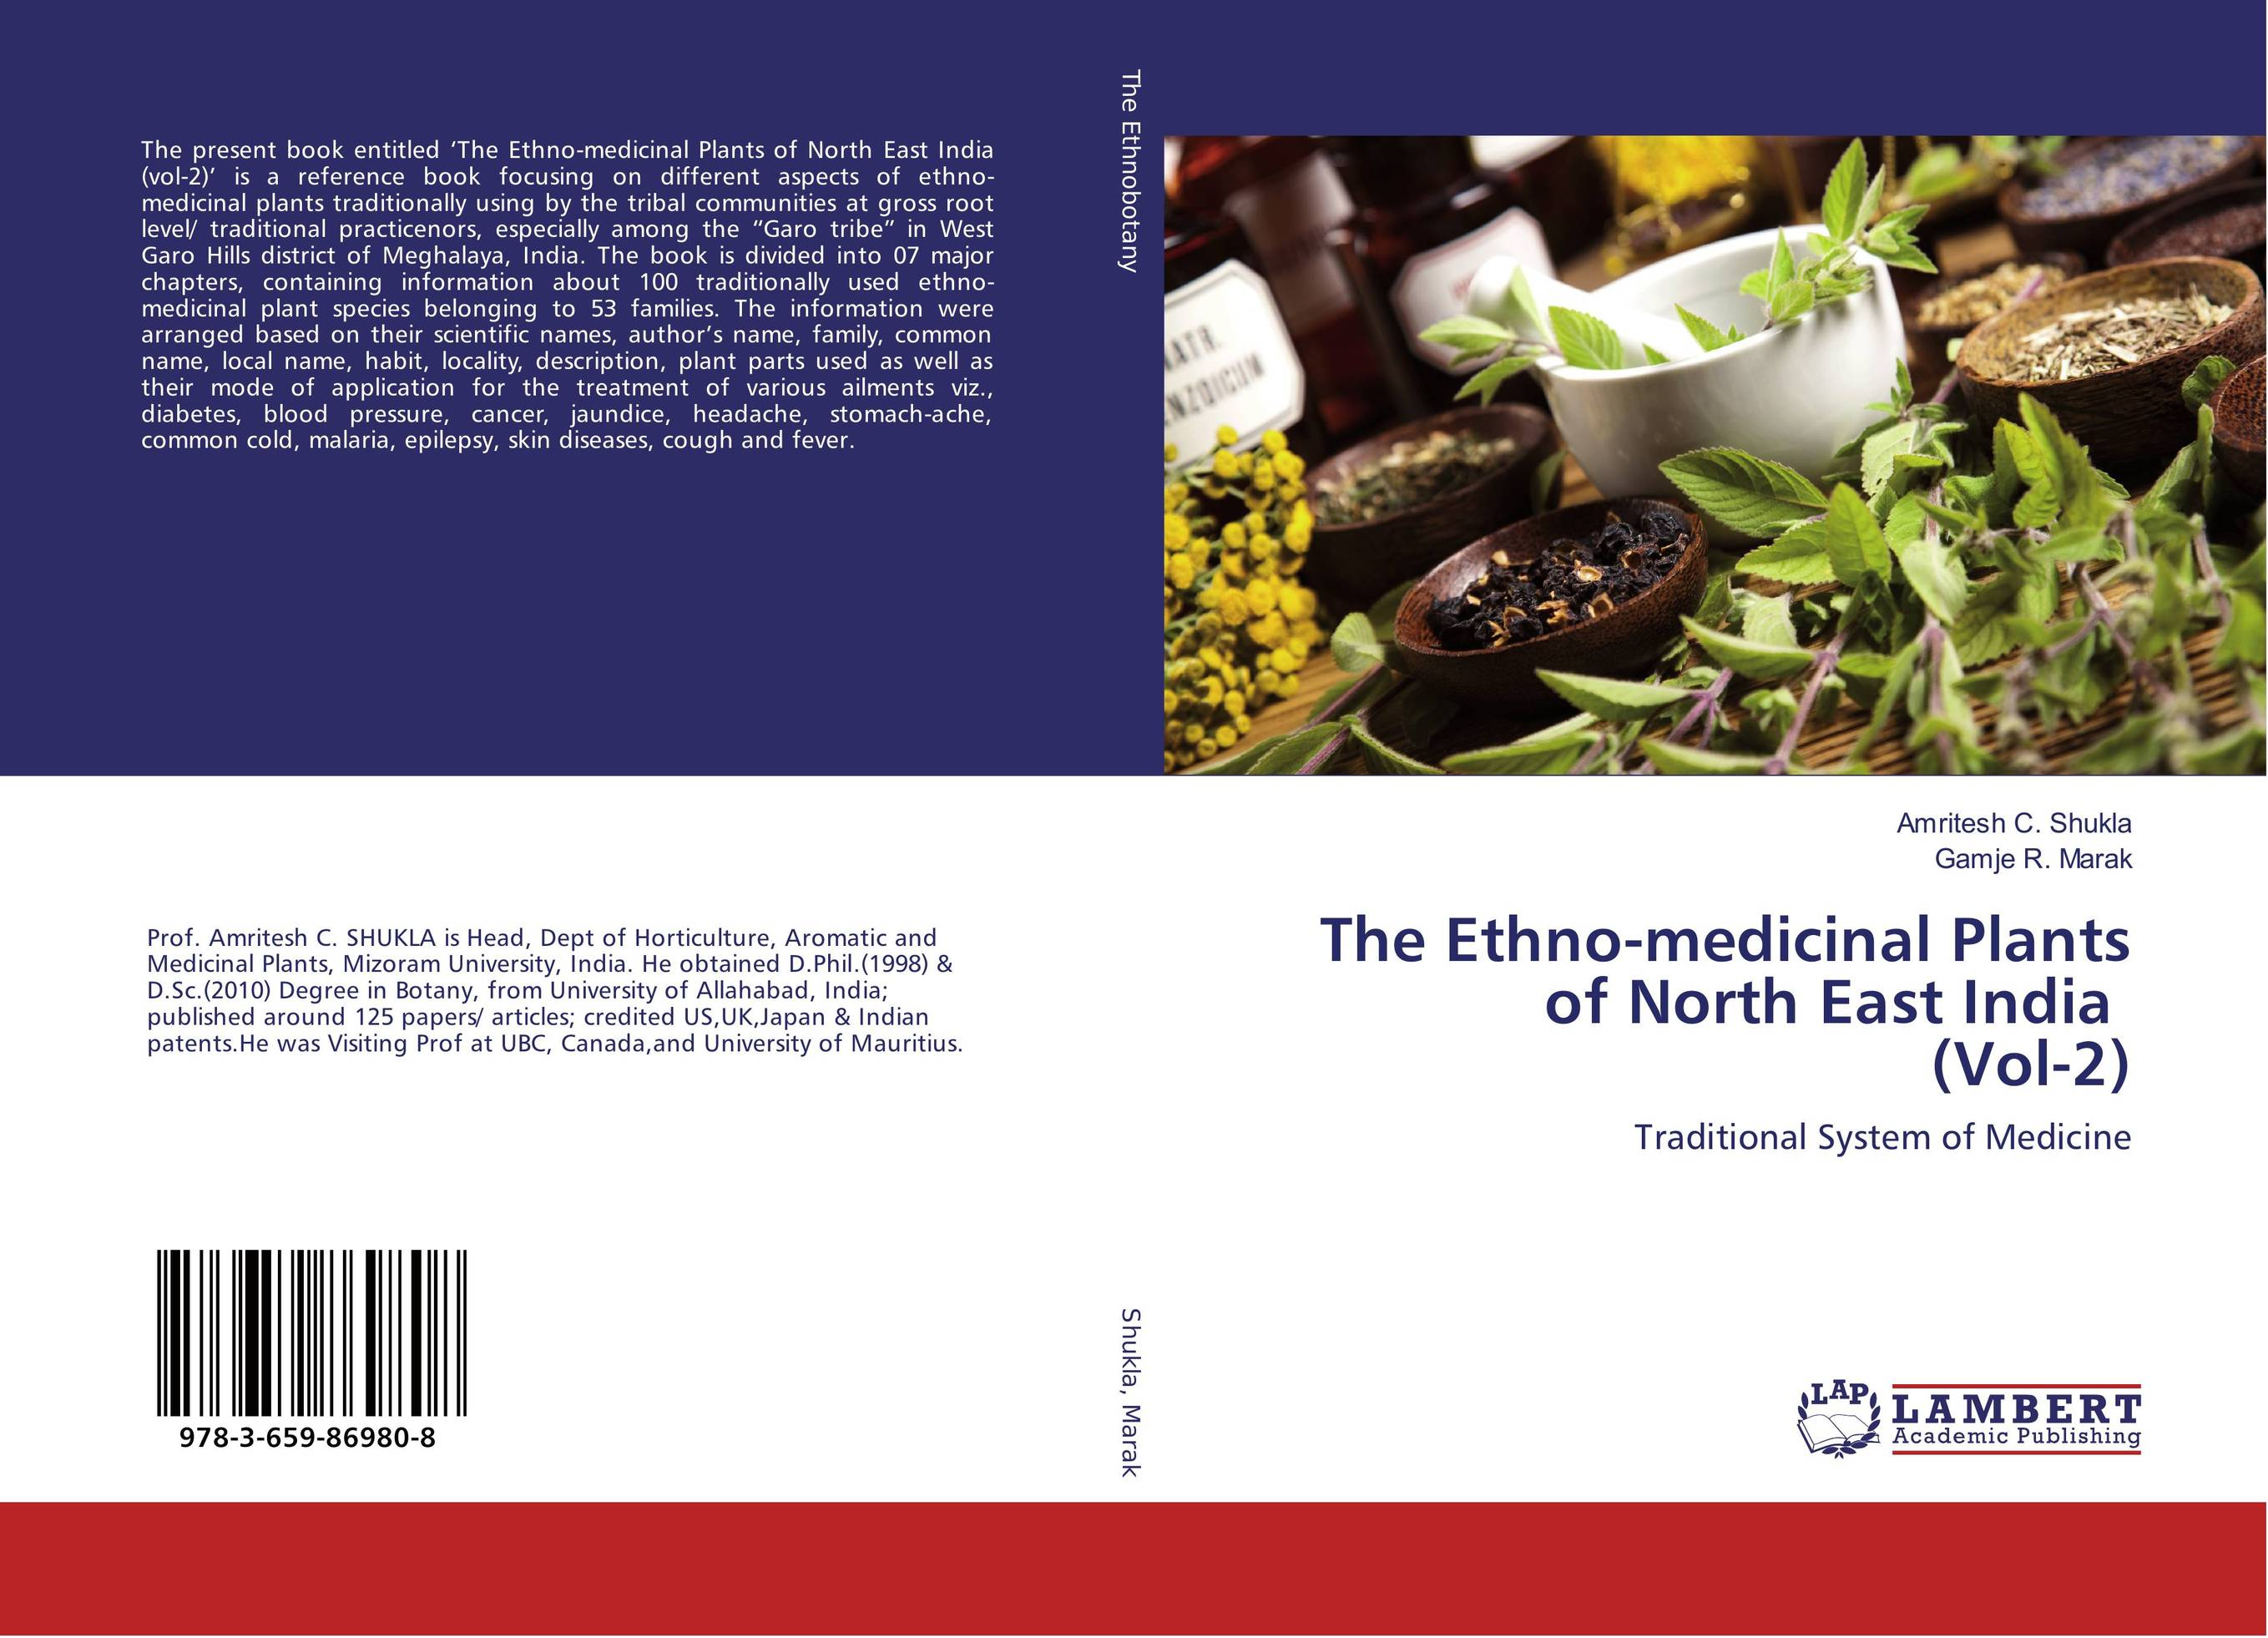 The Ethno-medicinal Plants of North East India (Vol-2) effect of medicinal plant extracts on the viability of protoscoleces